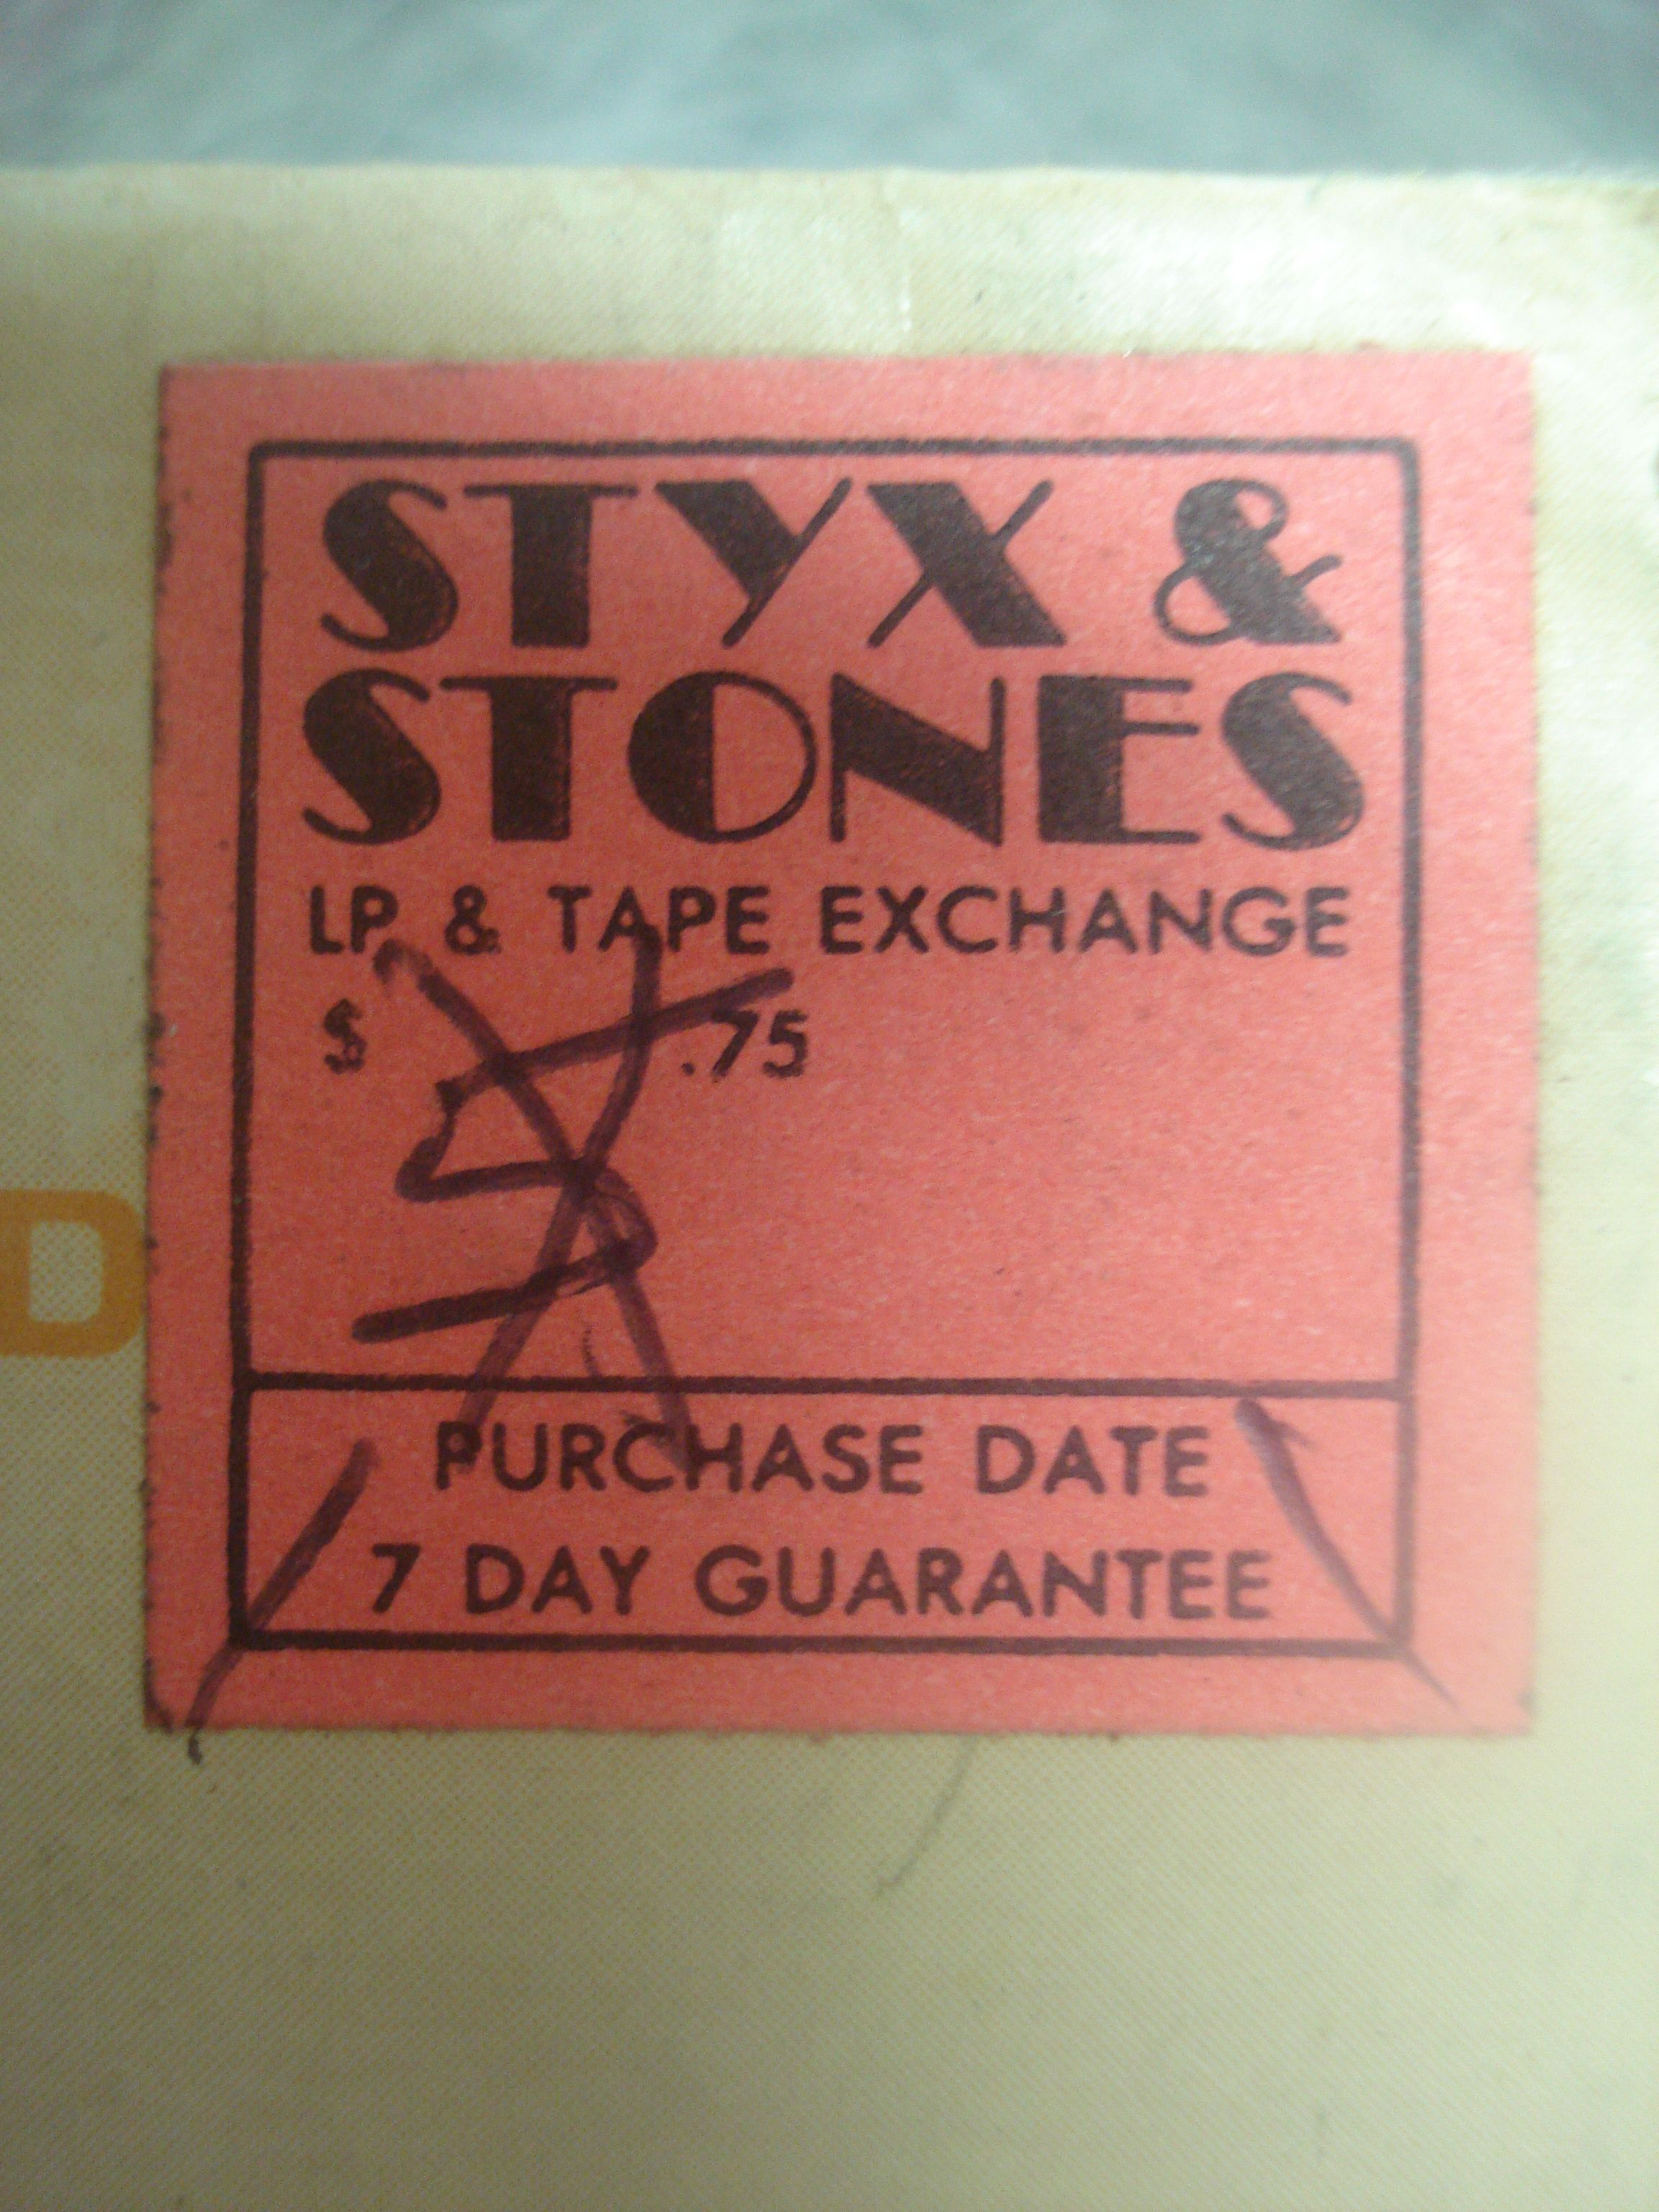 Hymies Vintage Records · Styx and Stones